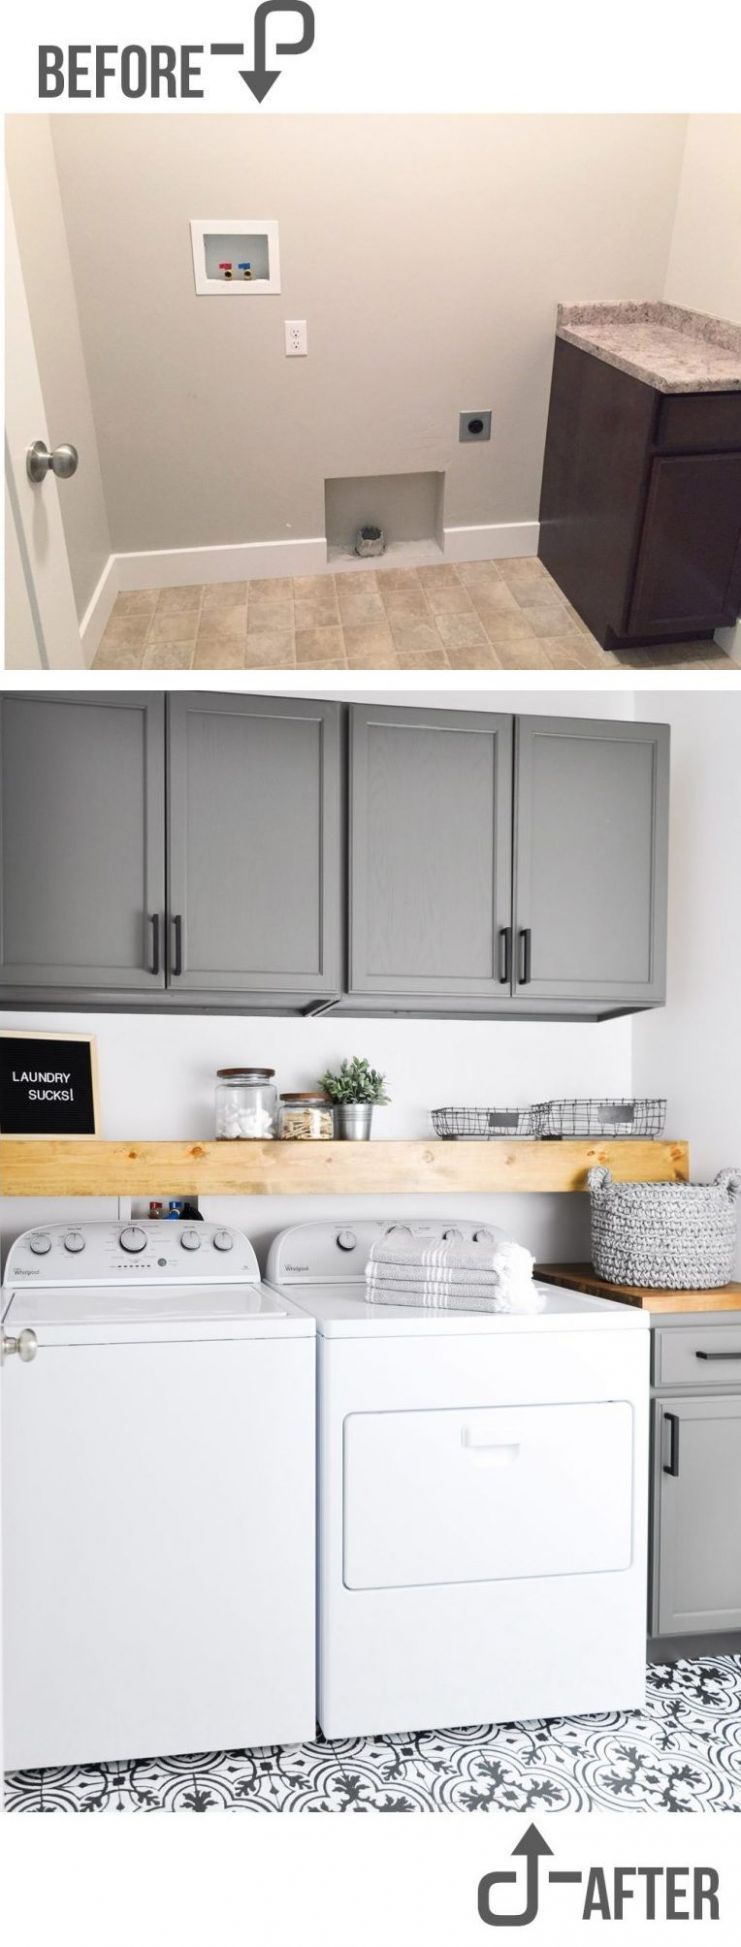 Inspiring Laundry Room Makeover Ideas With Amazing Results - laundry room ideas makeover